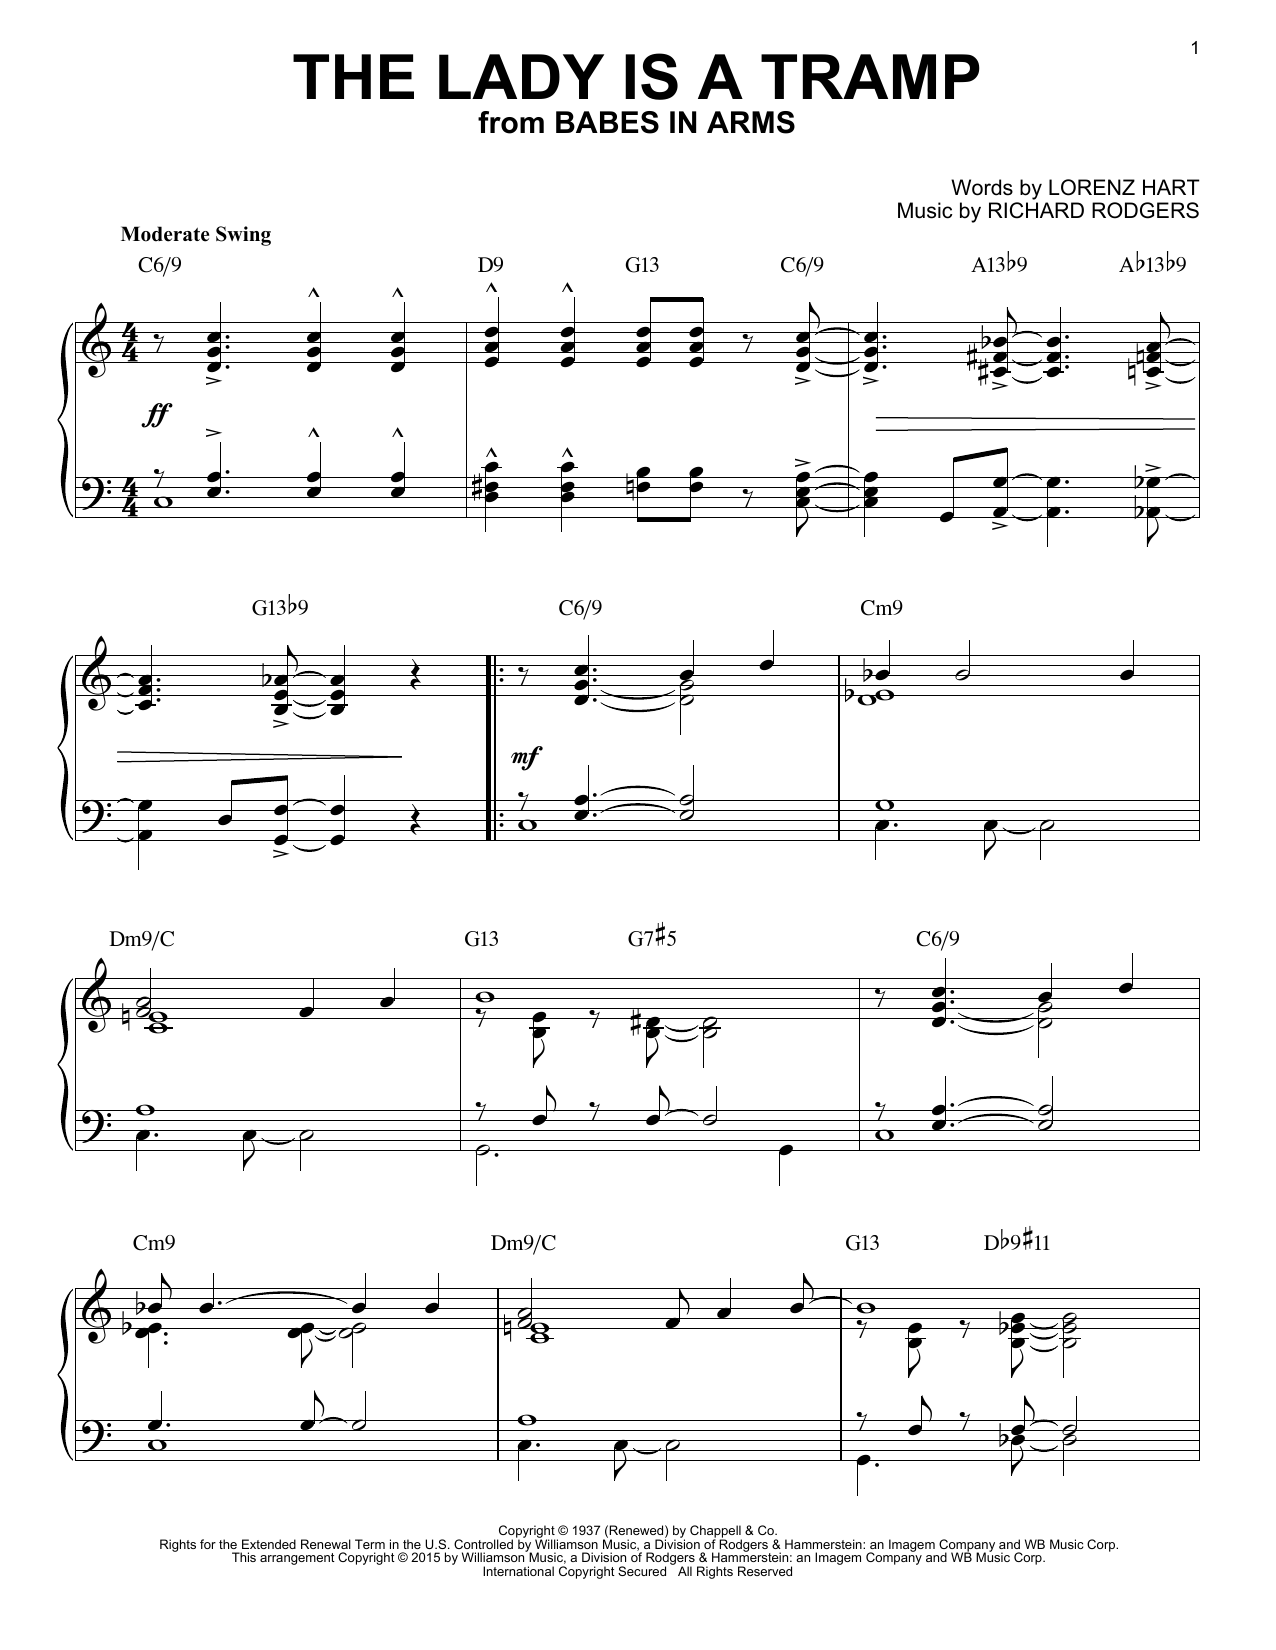 Rodgers & Hart The Lady Is A Tramp [Jazz version] (arr. Brent Edstrom) sheet music notes and chords. Download Printable PDF.